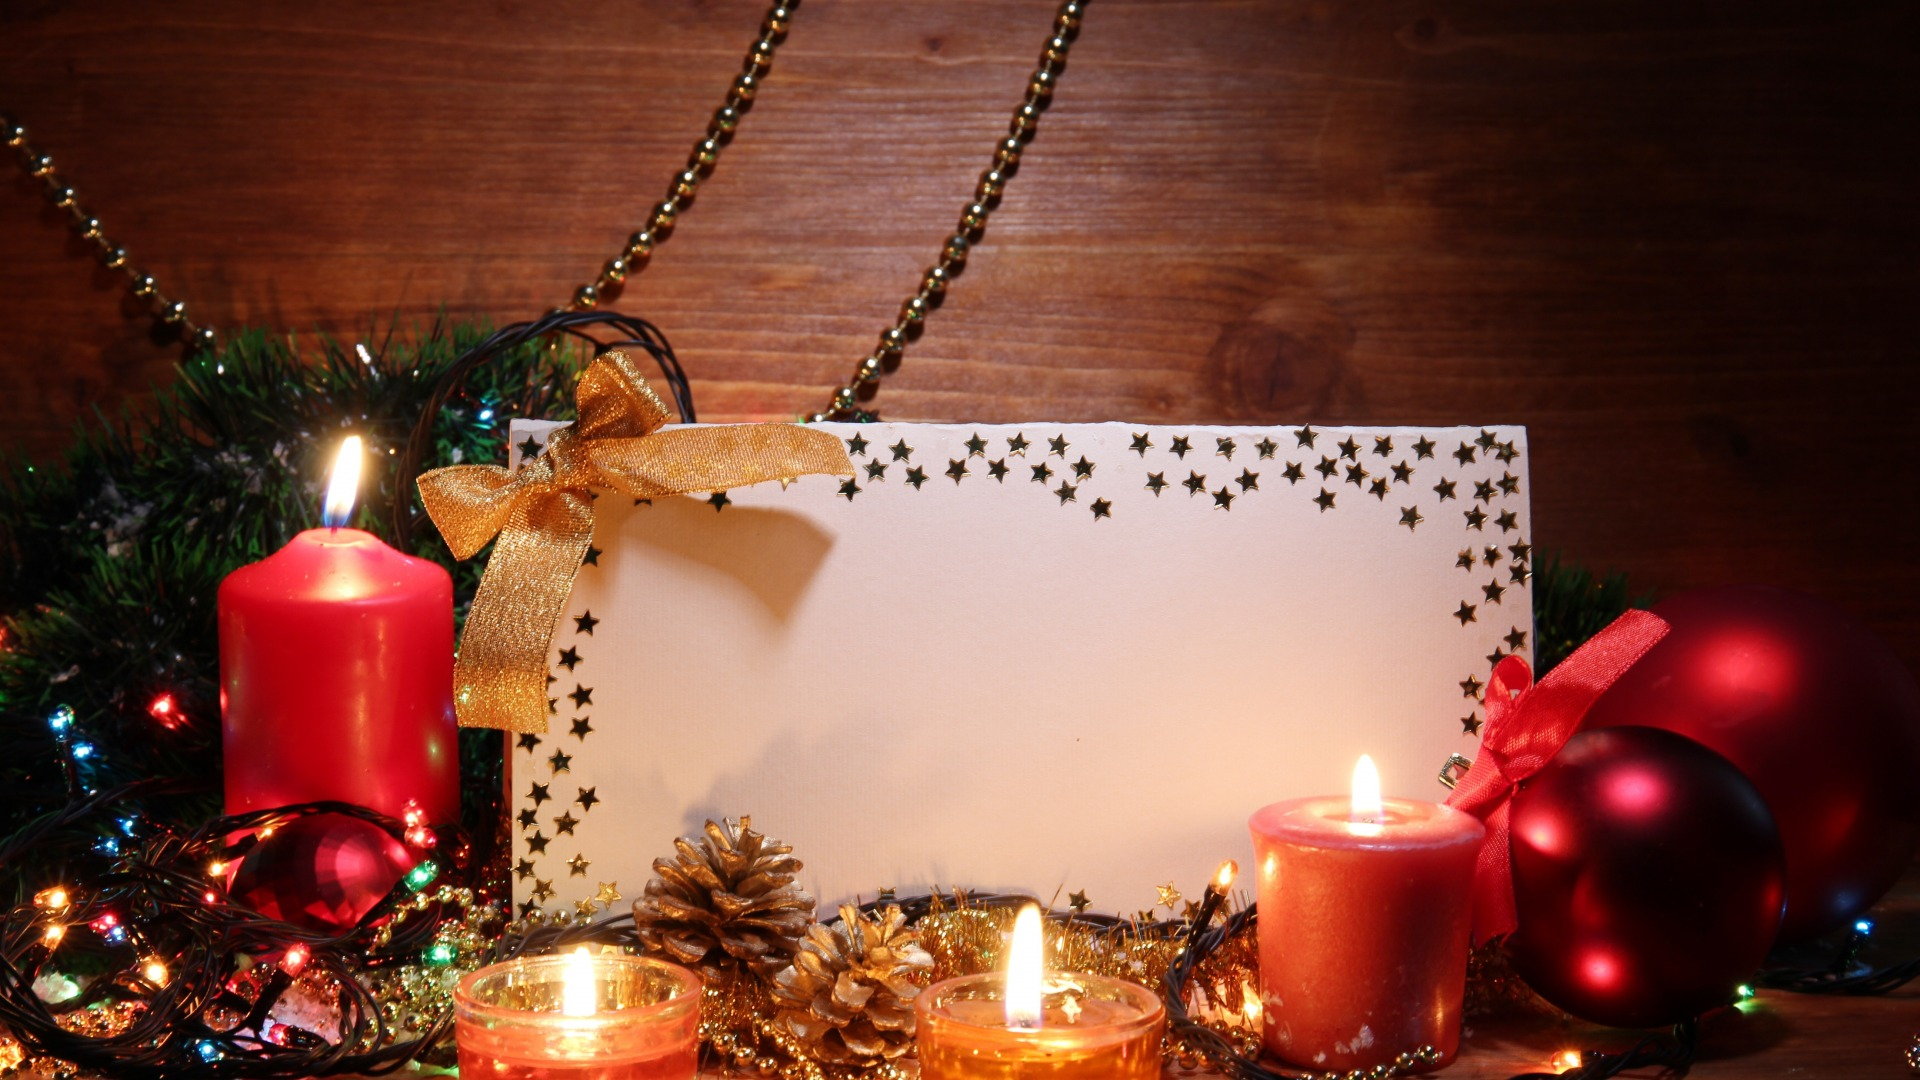 Download-balls-candles-tape-stars-twilight-garland-tinsel-bow-bumps-card-Christm-wallpaper-wp3404952